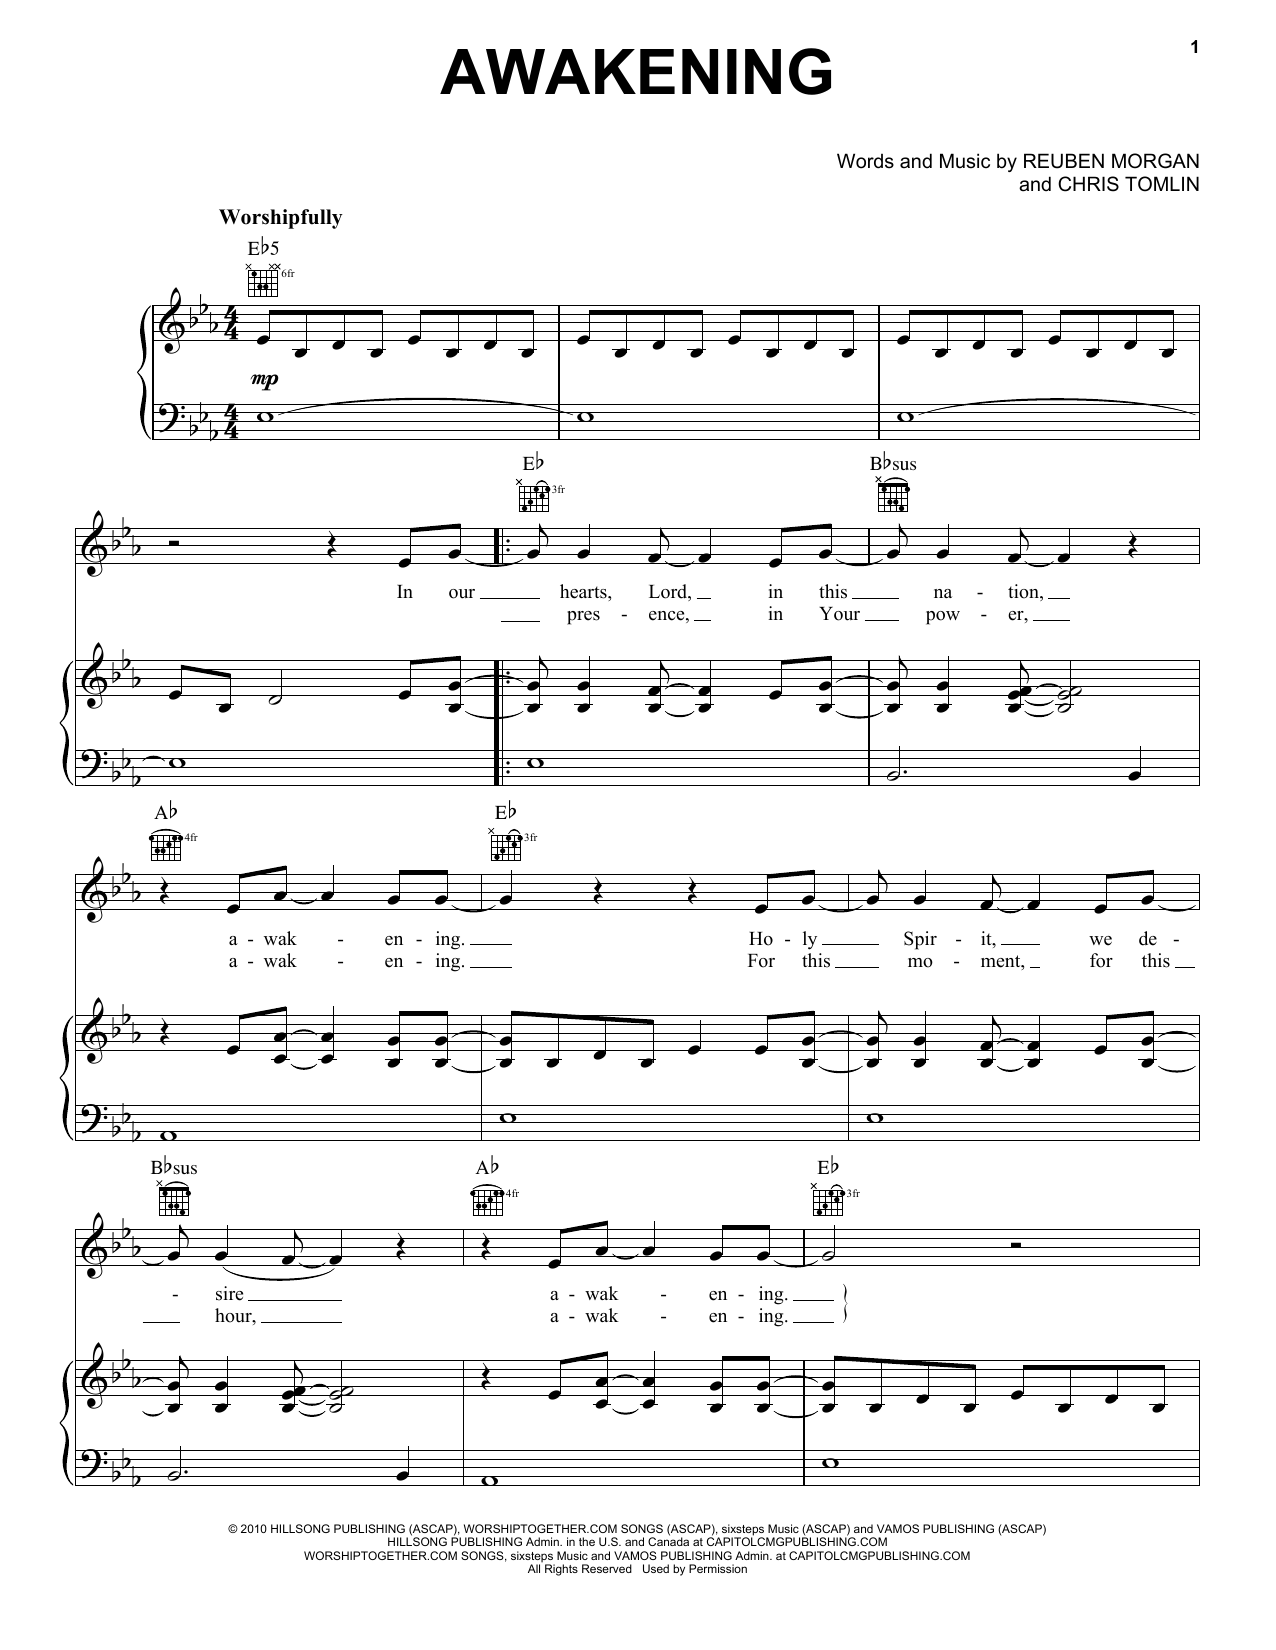 Passion Awakening Sheet Music Notes, Chords   Download Printable Piano,  Vocal & Guitar Right Hand Melody PDF Score   SKU 15